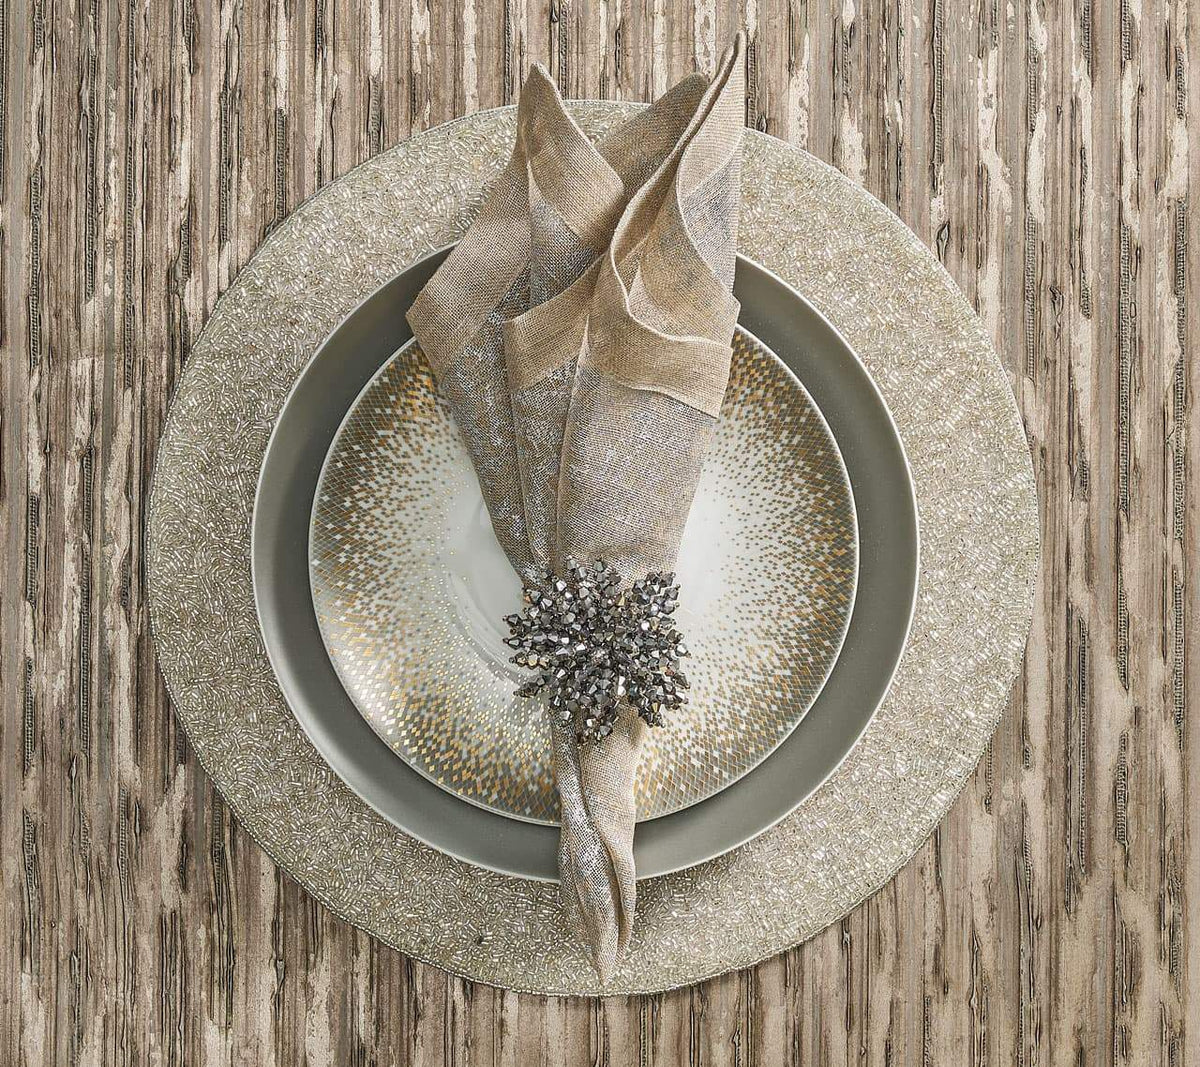 Distressed Napkin Natural & Silver, Set of 4